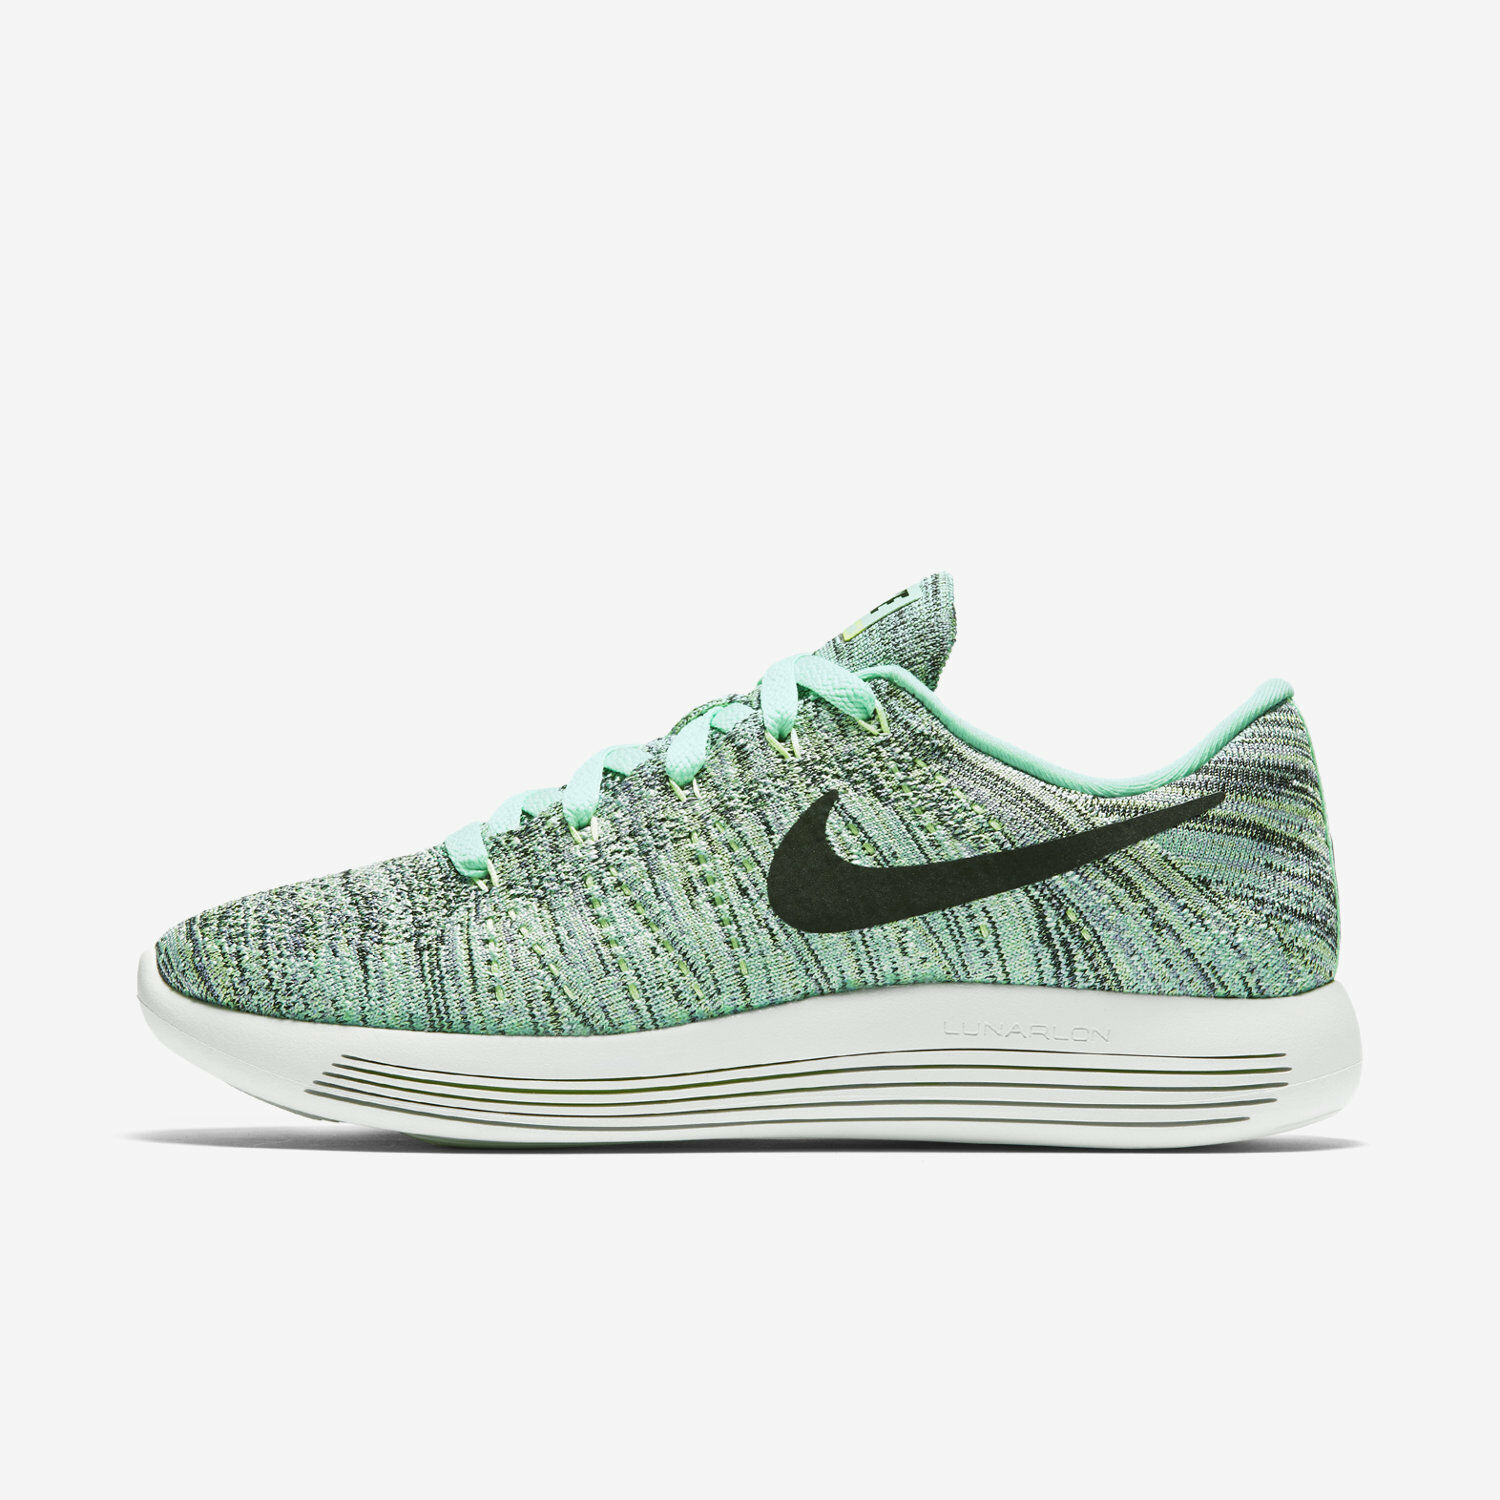 WMNS Nike Lunarepic Low Flyknit Sz 5 Green Glow/Black 843765-300 FREE SHIPPING The most popular shoes for men and women